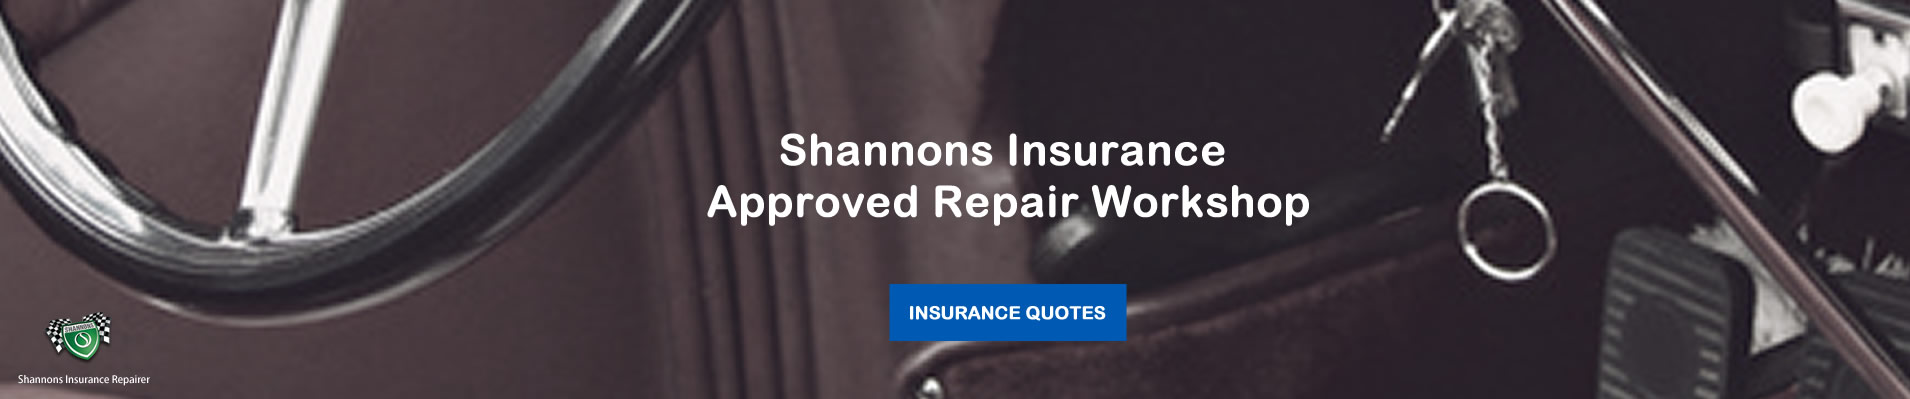 Shannons insurance approved repair workshop